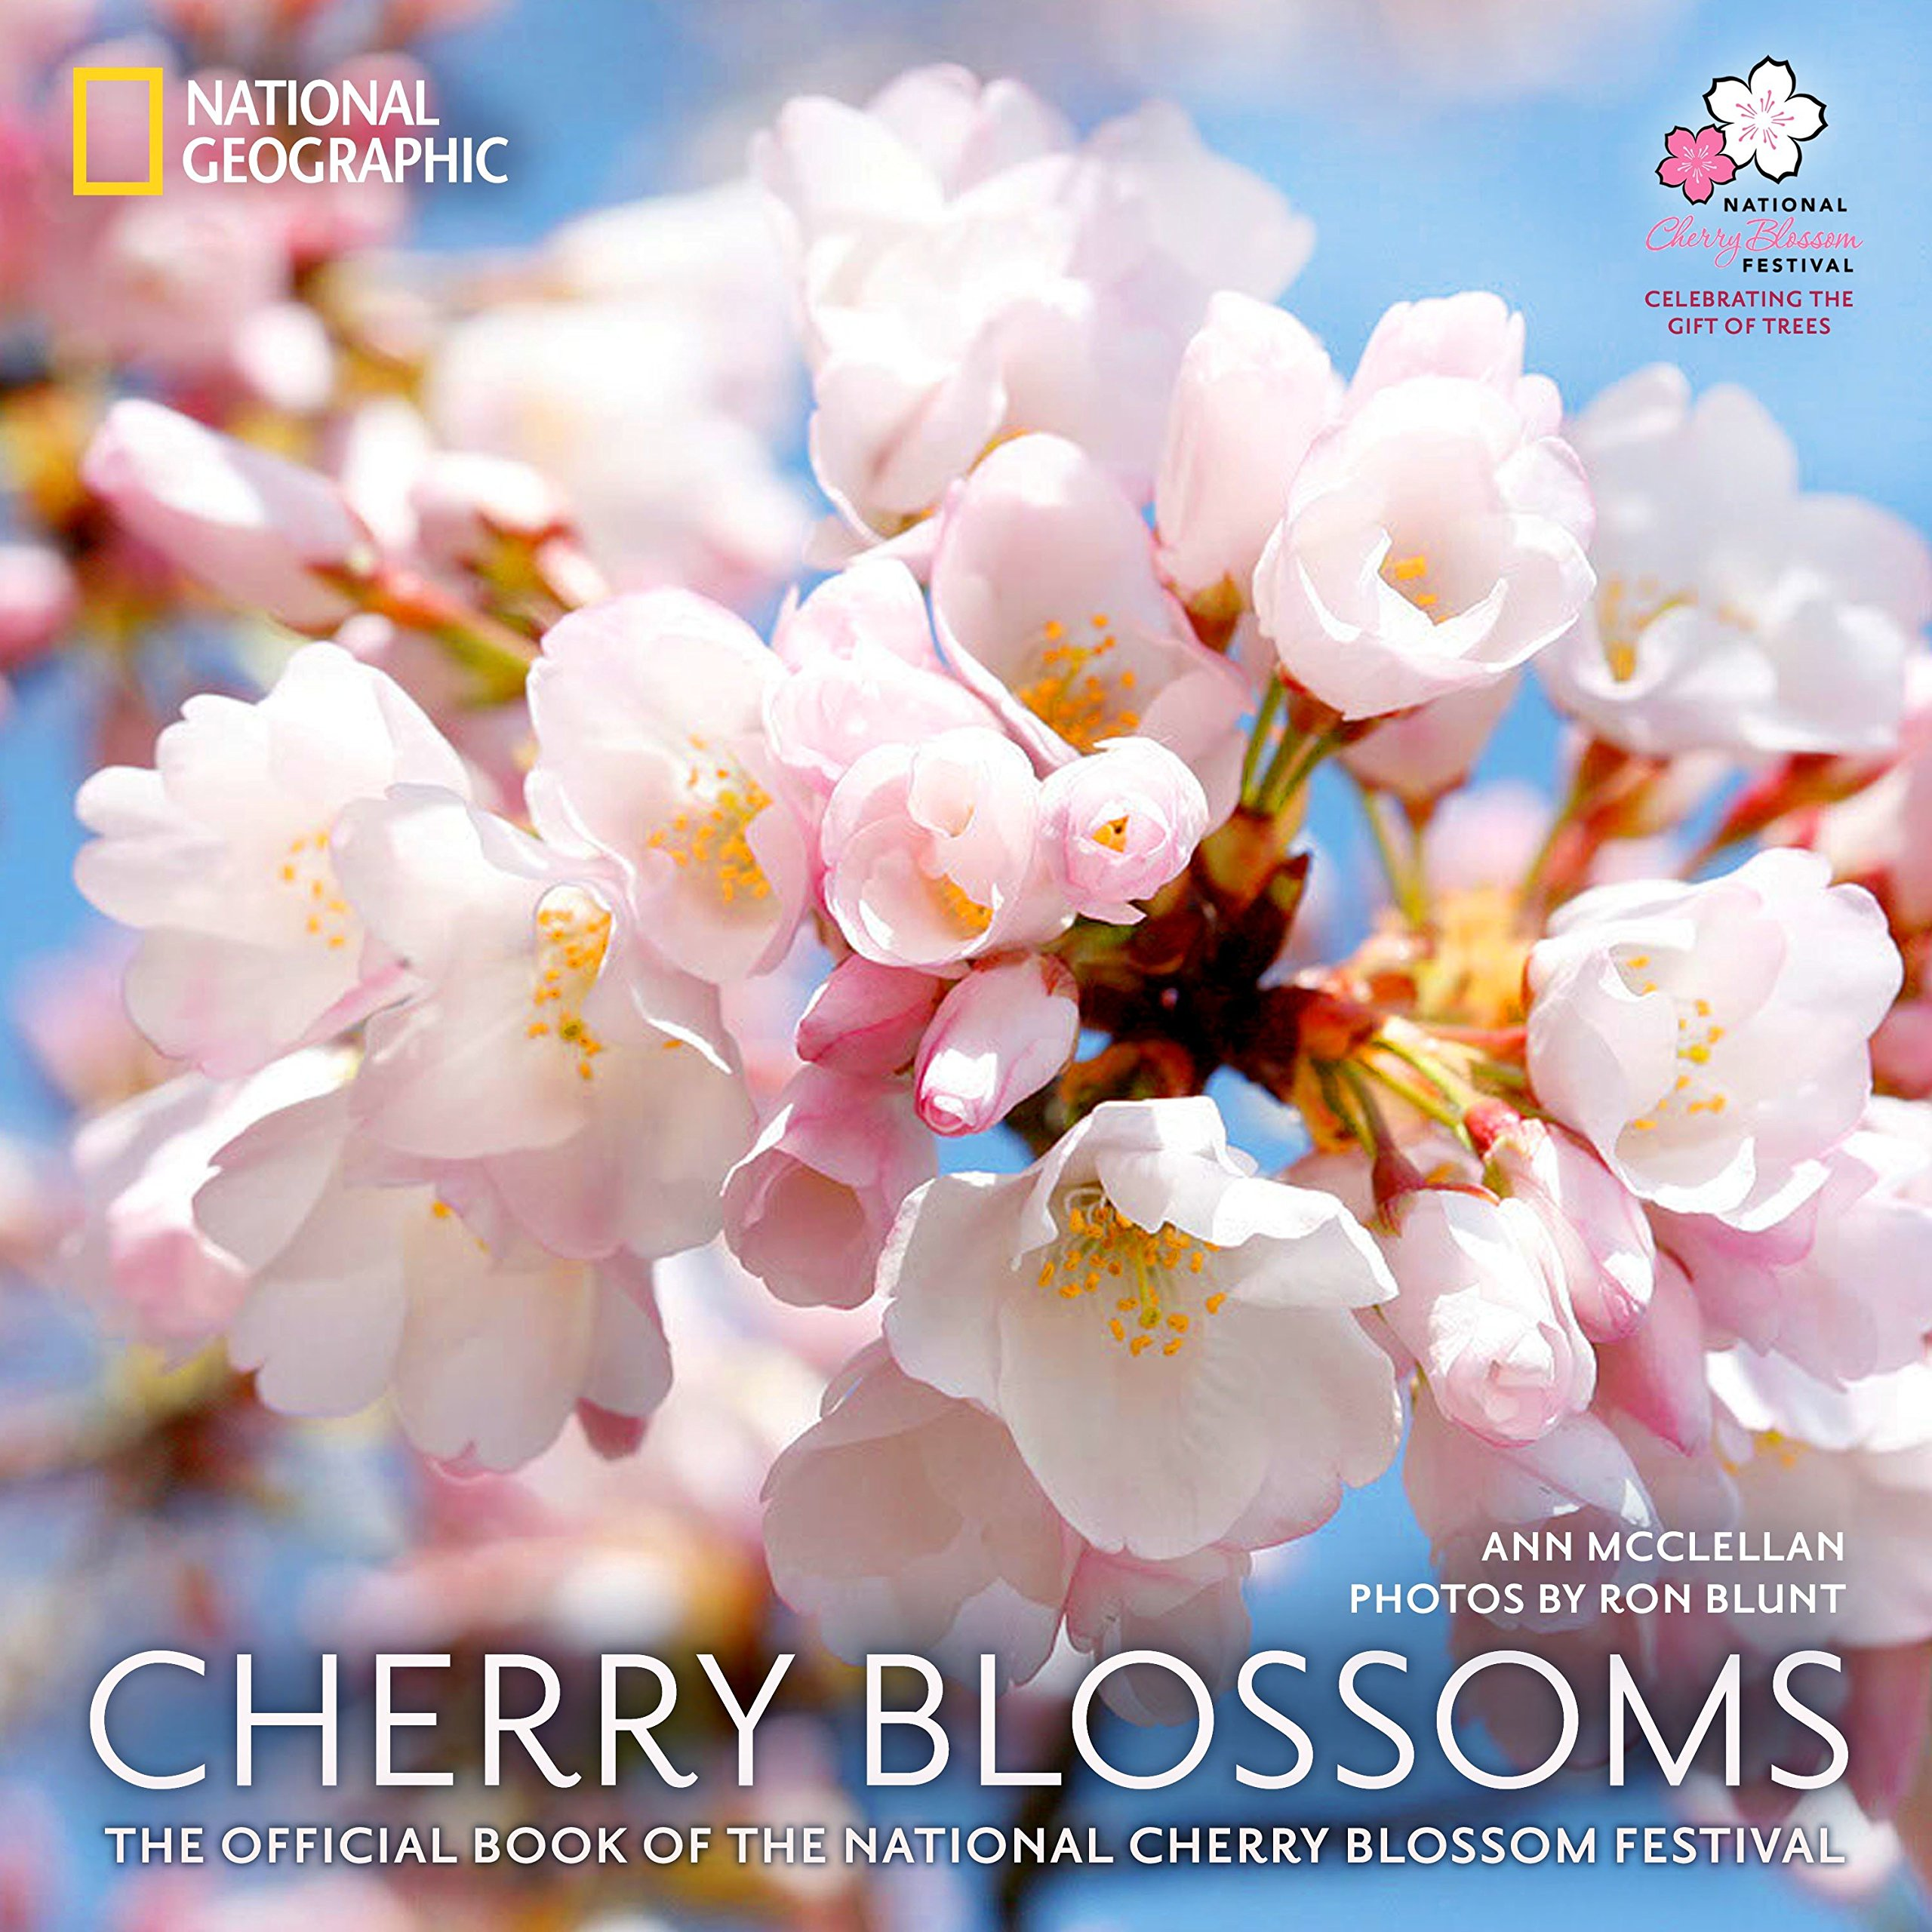 Cherry Blossoms: The Official Book of the National Cherry Blossom Festival pdf